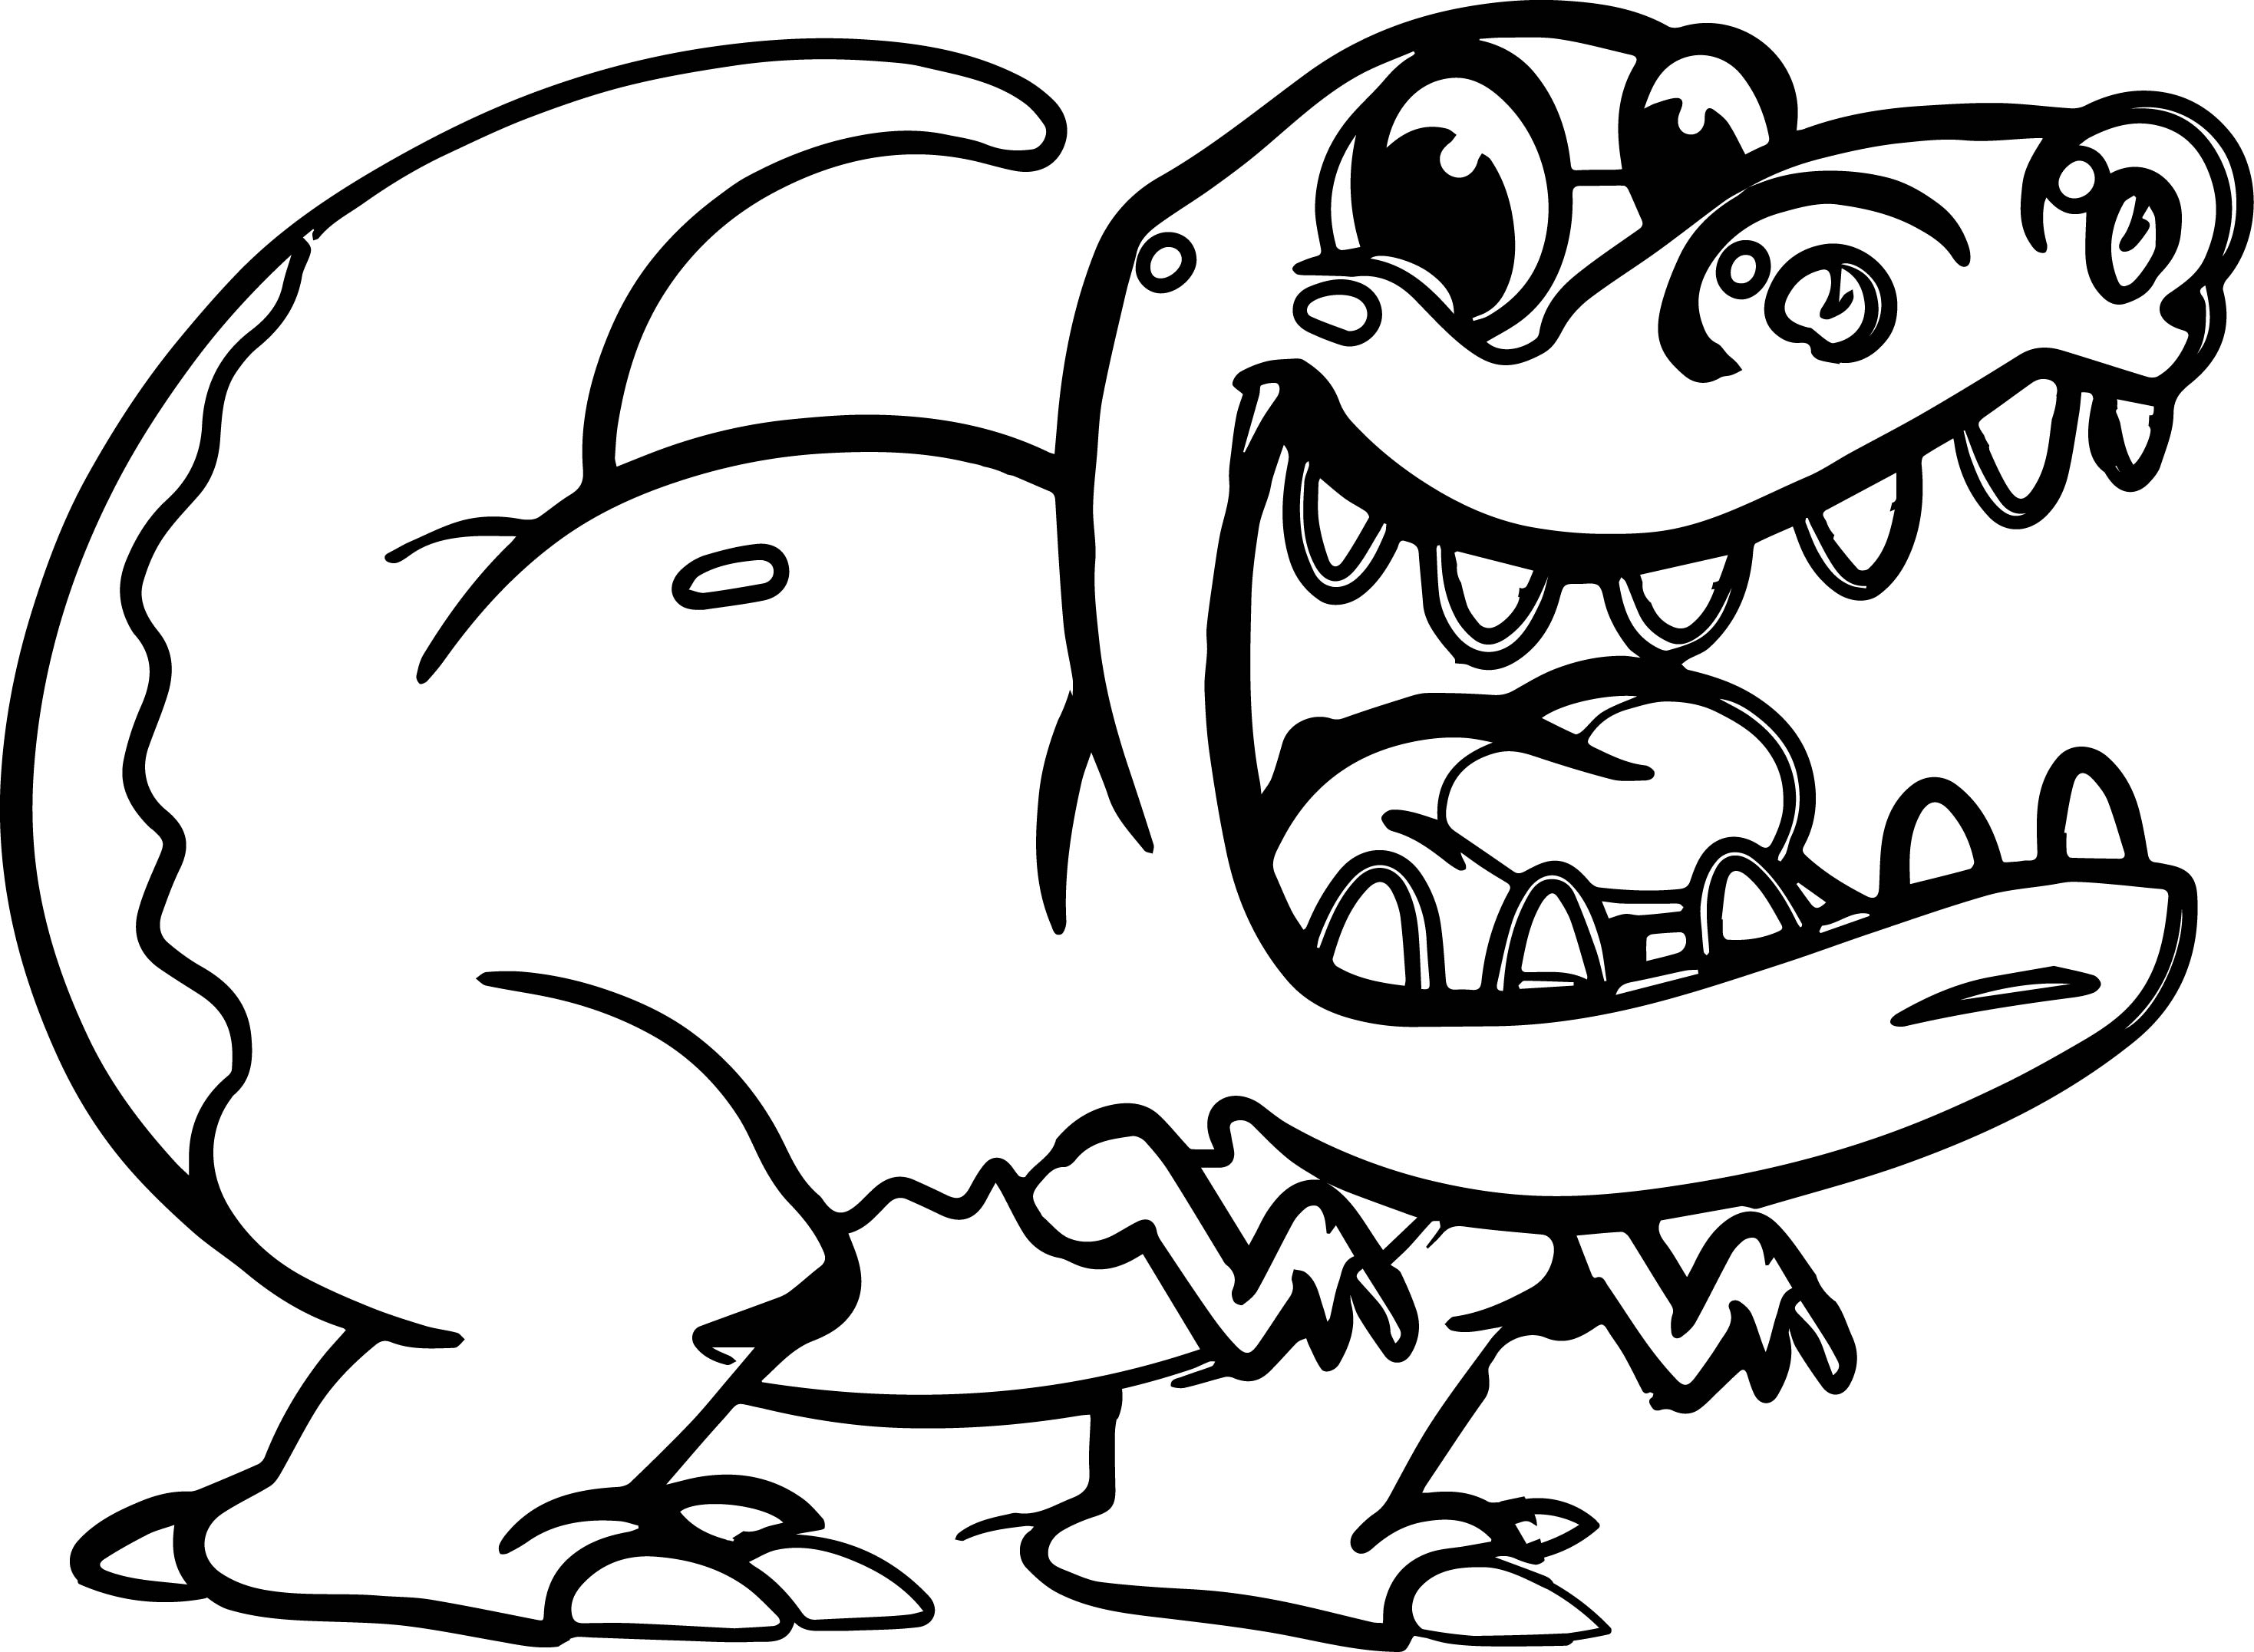 cartoon dinosaur coloring pictures baby dinosaur coloring pages for preschoolers dinosaur cartoon coloring pictures dinosaur